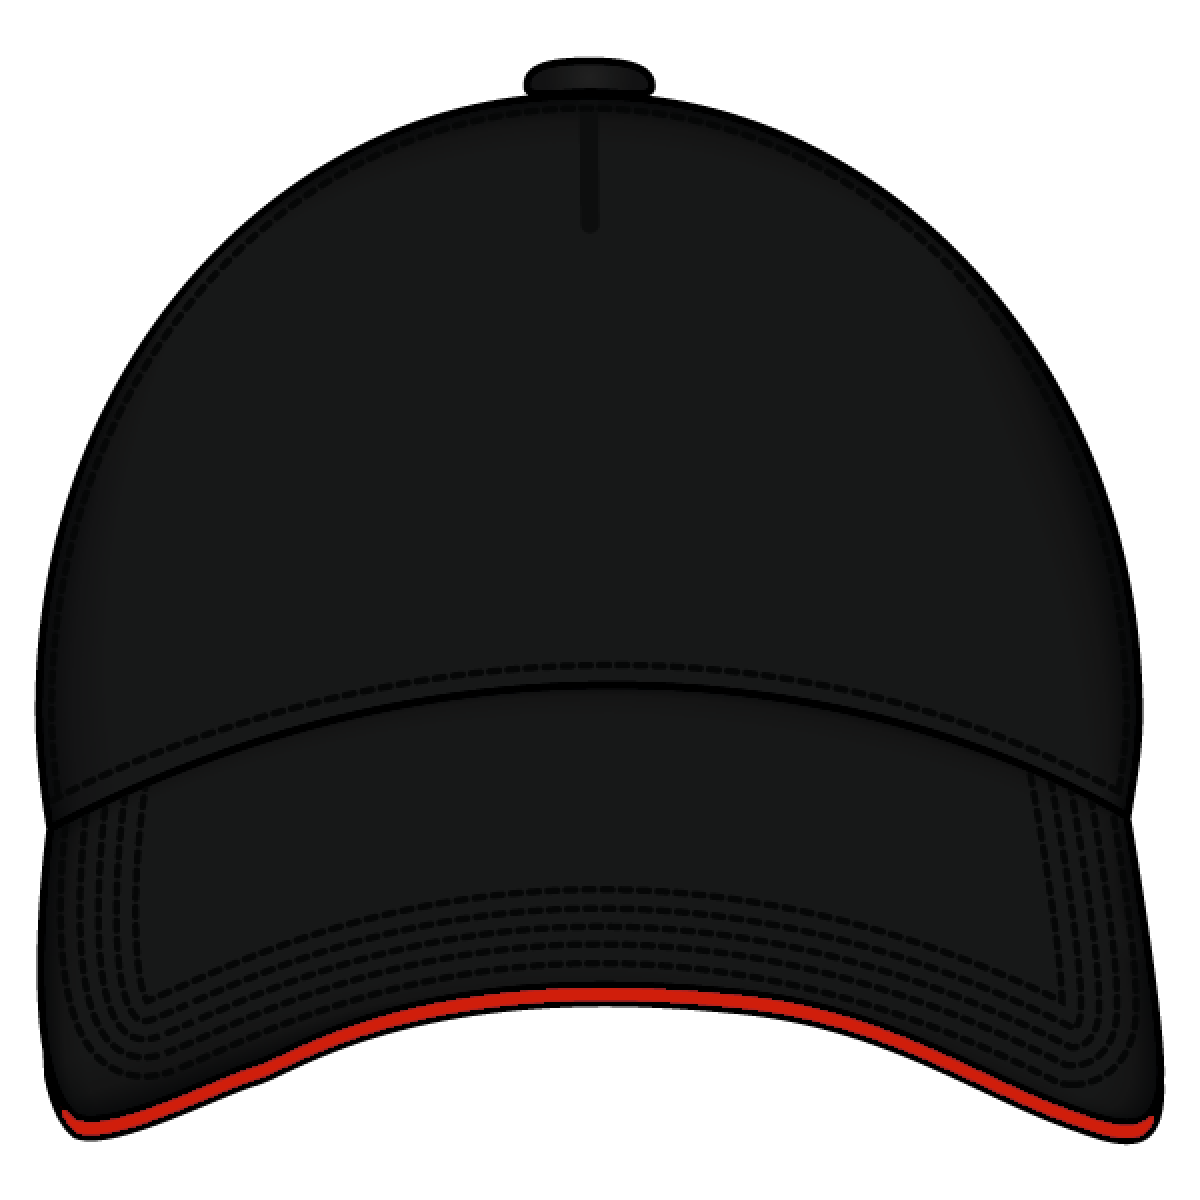 Sandwich Cap Black And Red Png Image Baseball Cap Black And Red Cap